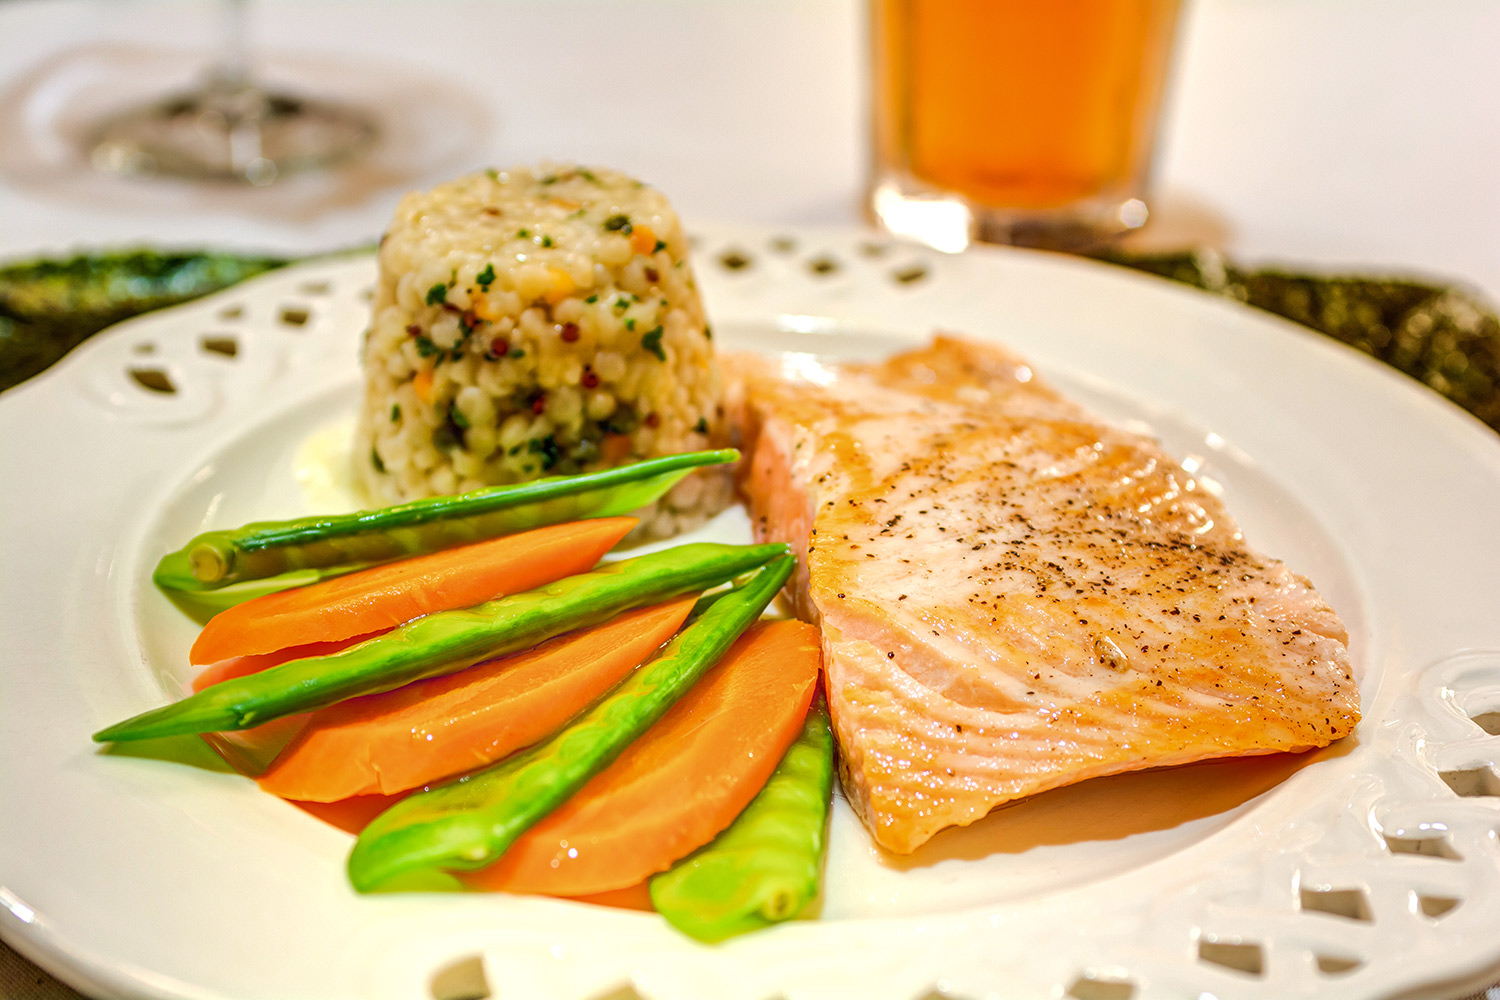 Gig Harbor Court | Salmon, rice, and vegetables